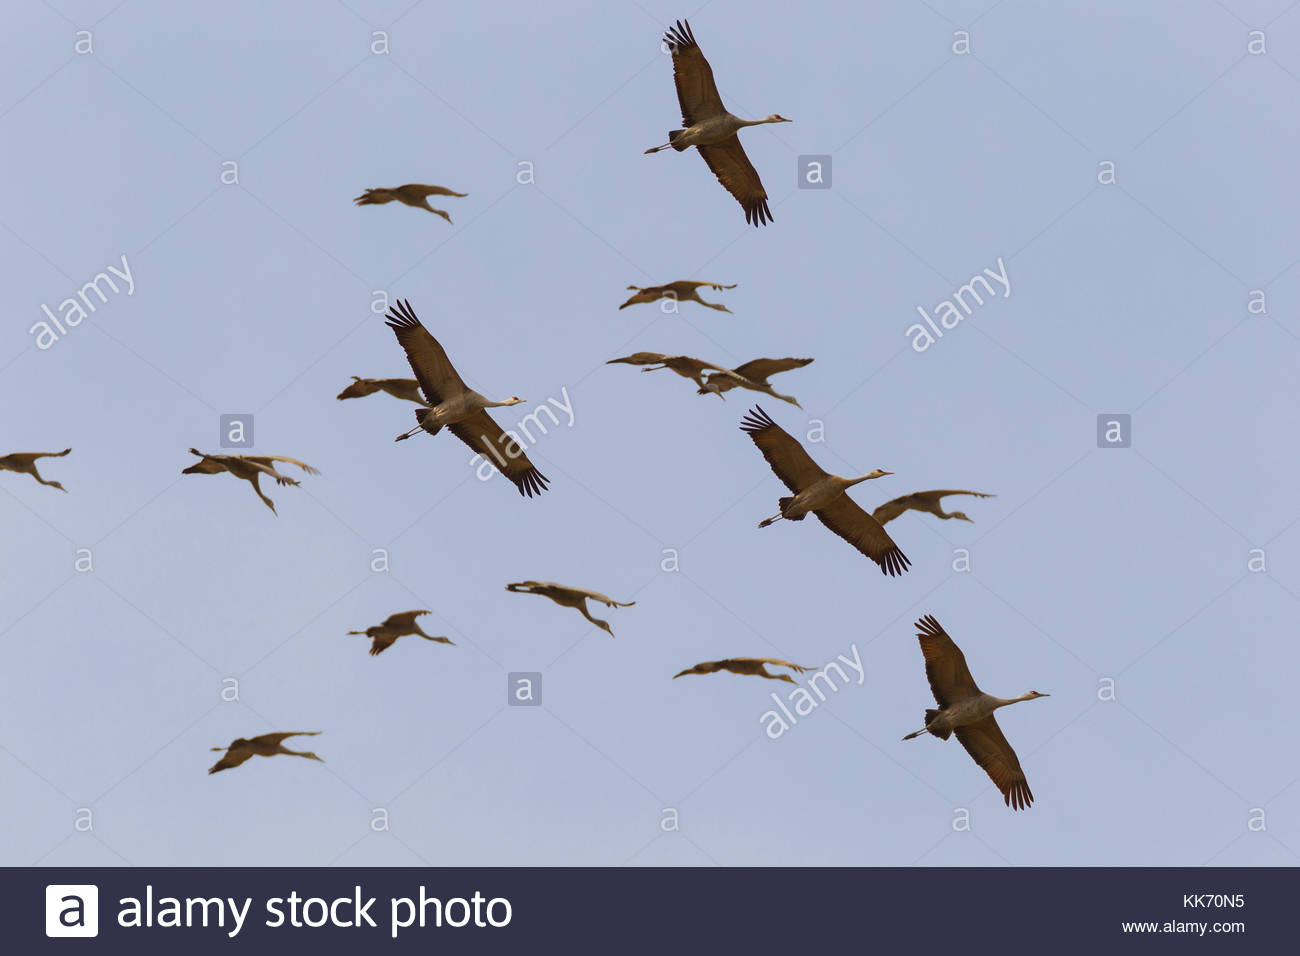 A flock of sandhill cranes (Grus canadensis) circles over the Columbia National Wildlife Refuge in Washington state. - Stock Image